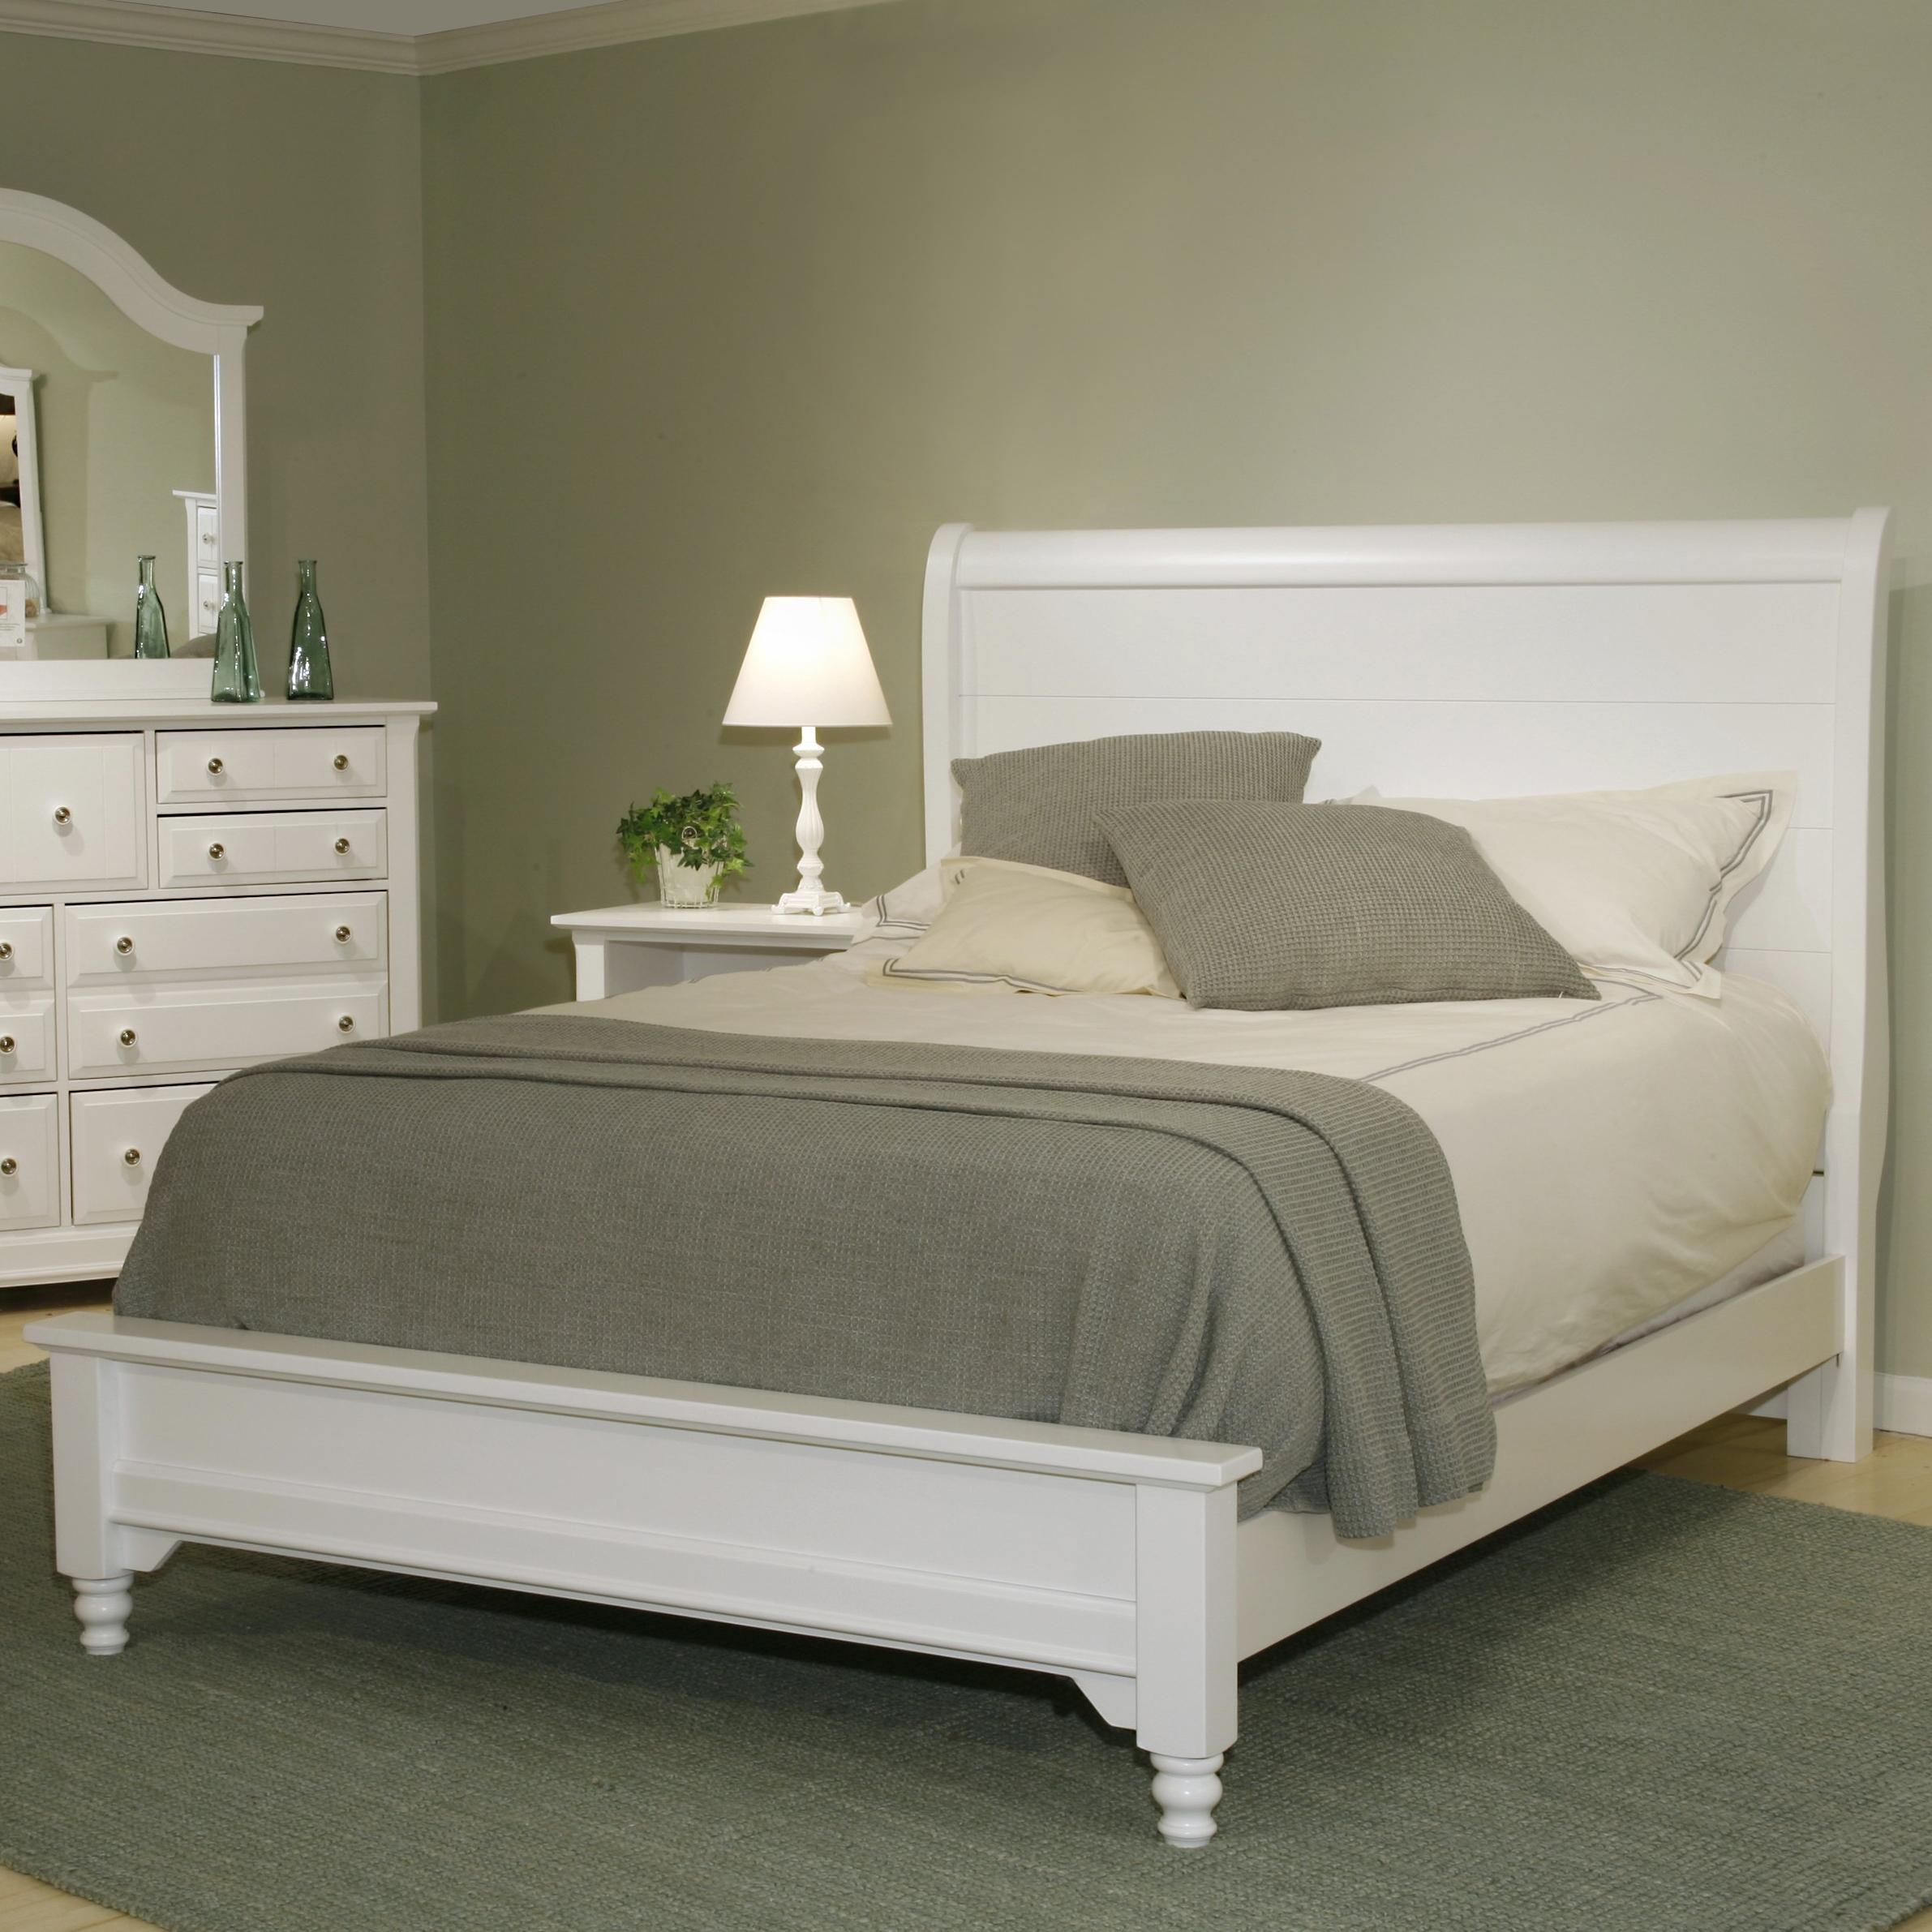 Vaughan bassett cottage twin sleigh bed w low footboard Twin sleigh bed